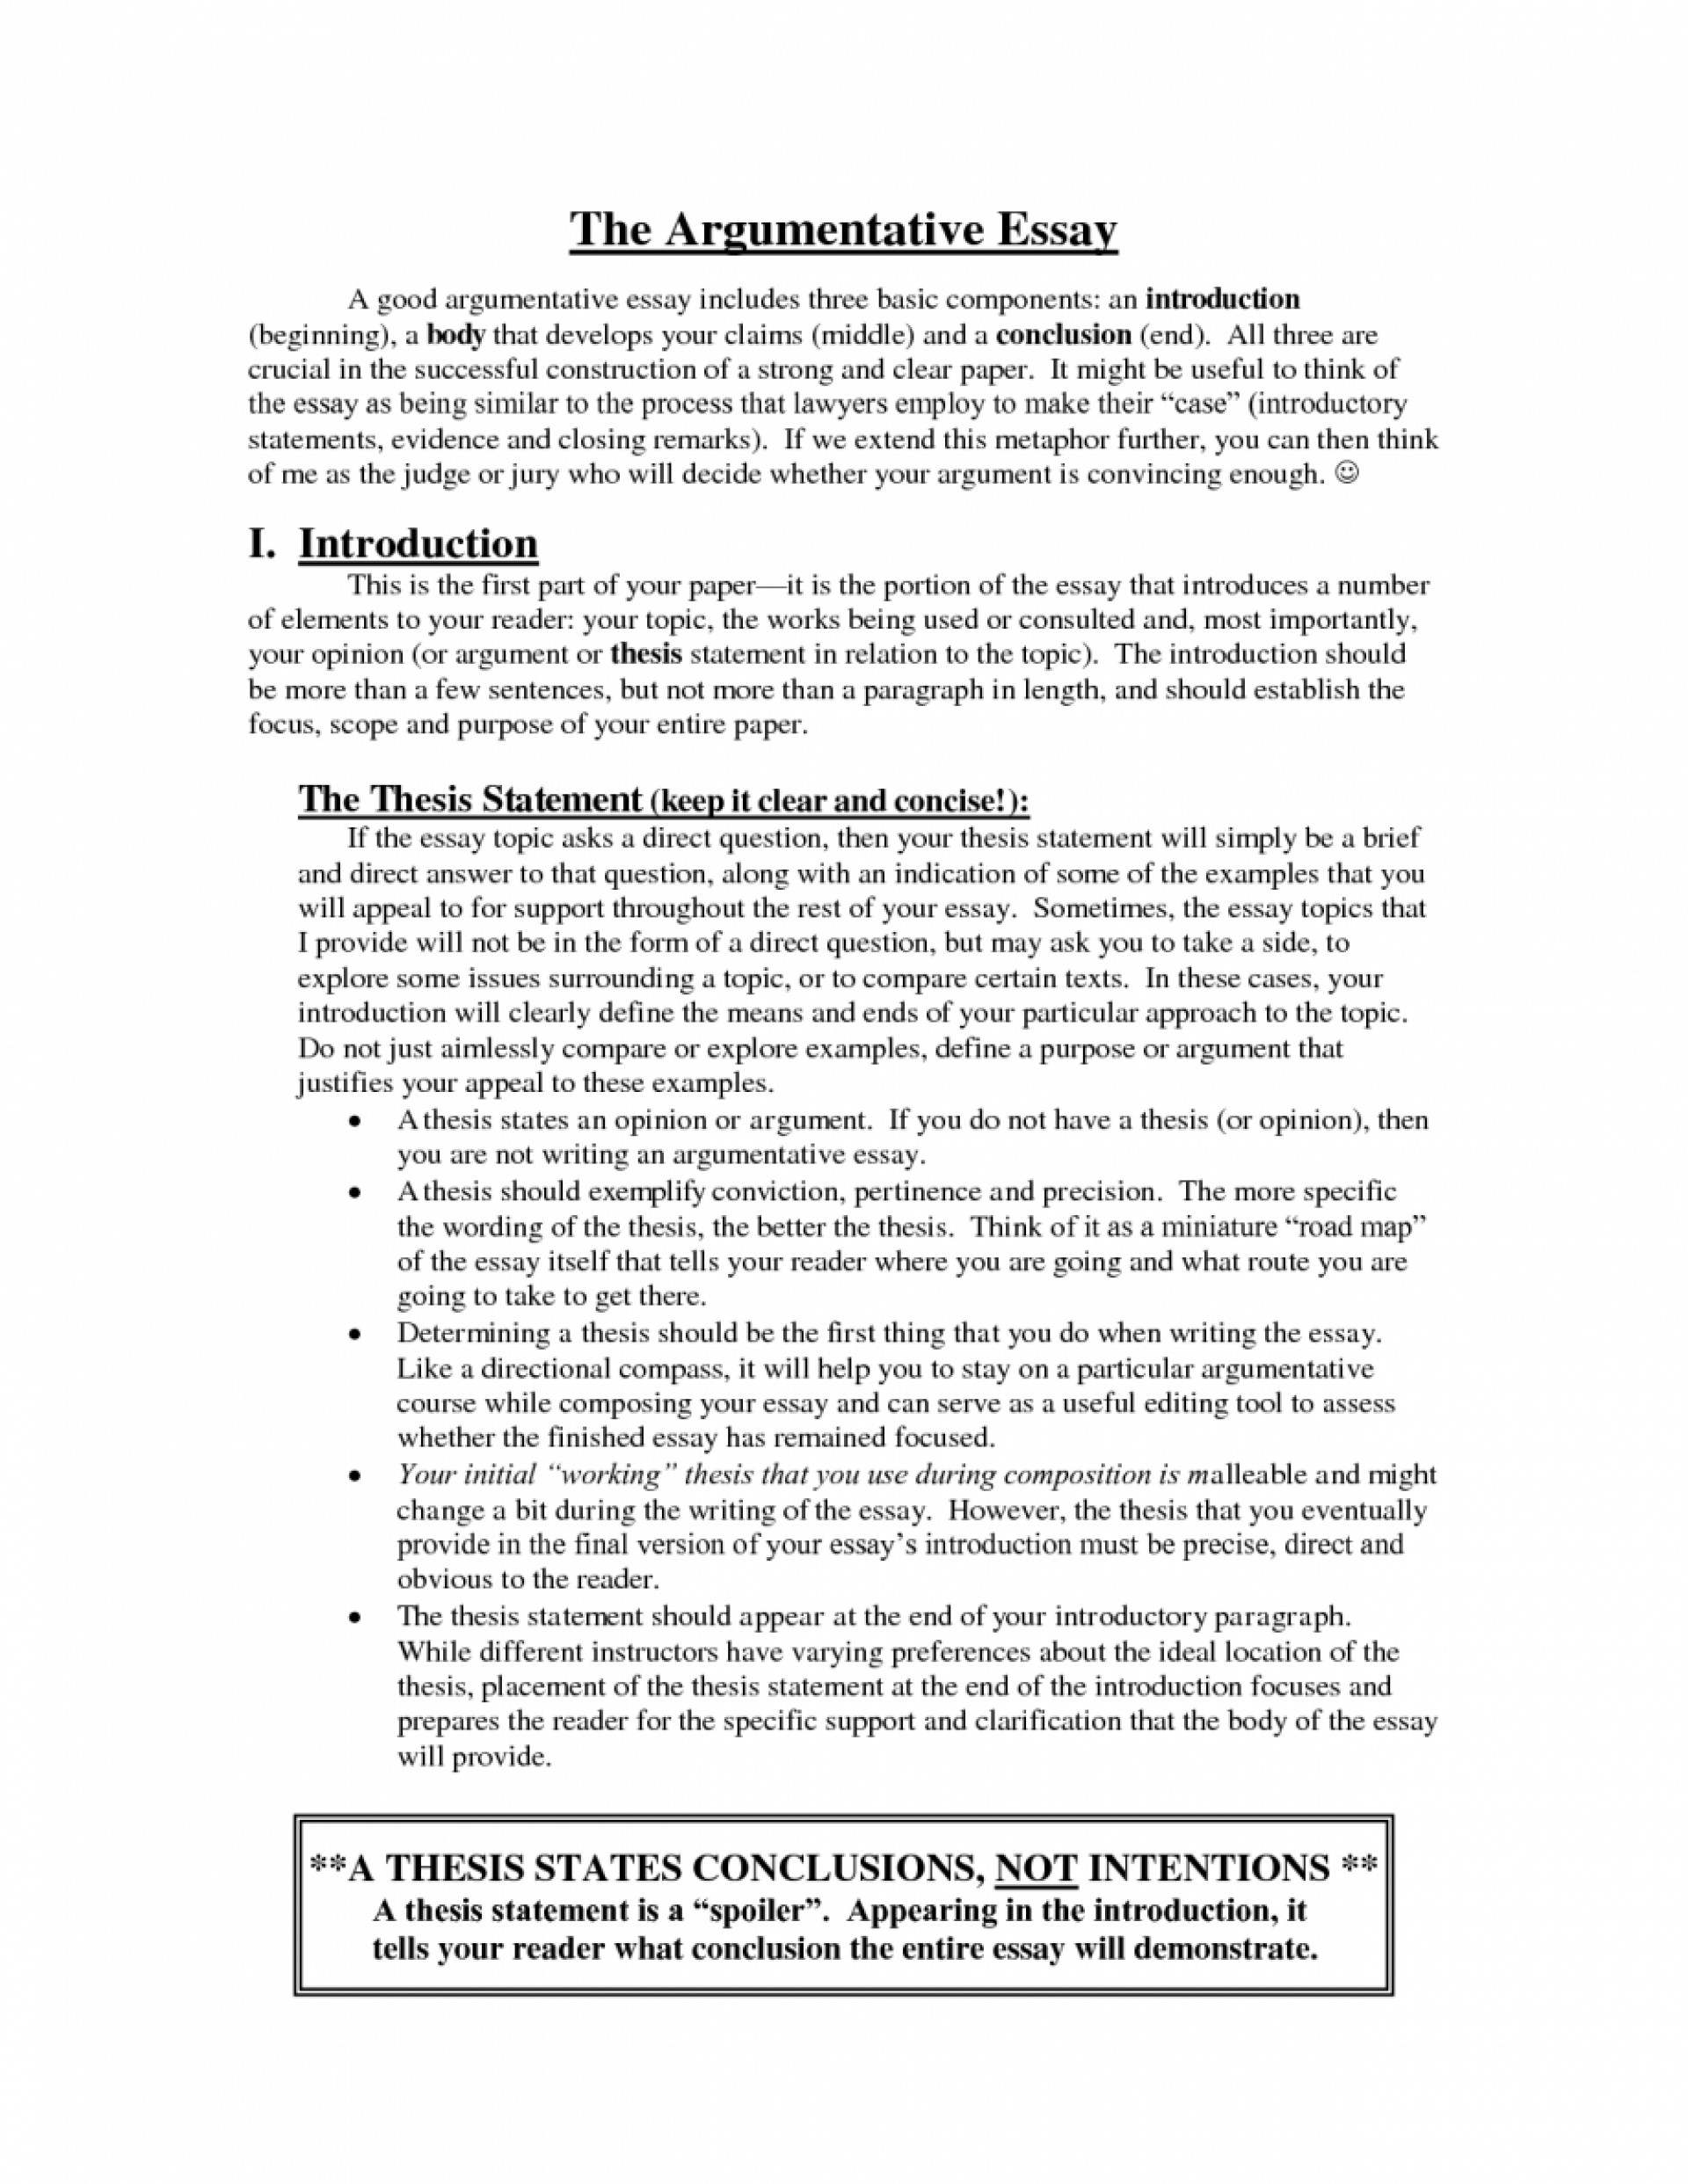 005 Argumentative Essay Introduction Examples Example Help Writing An College Good Persuasive Paragraph Image Ga Samples Personal Awesome Middle School Format 1920